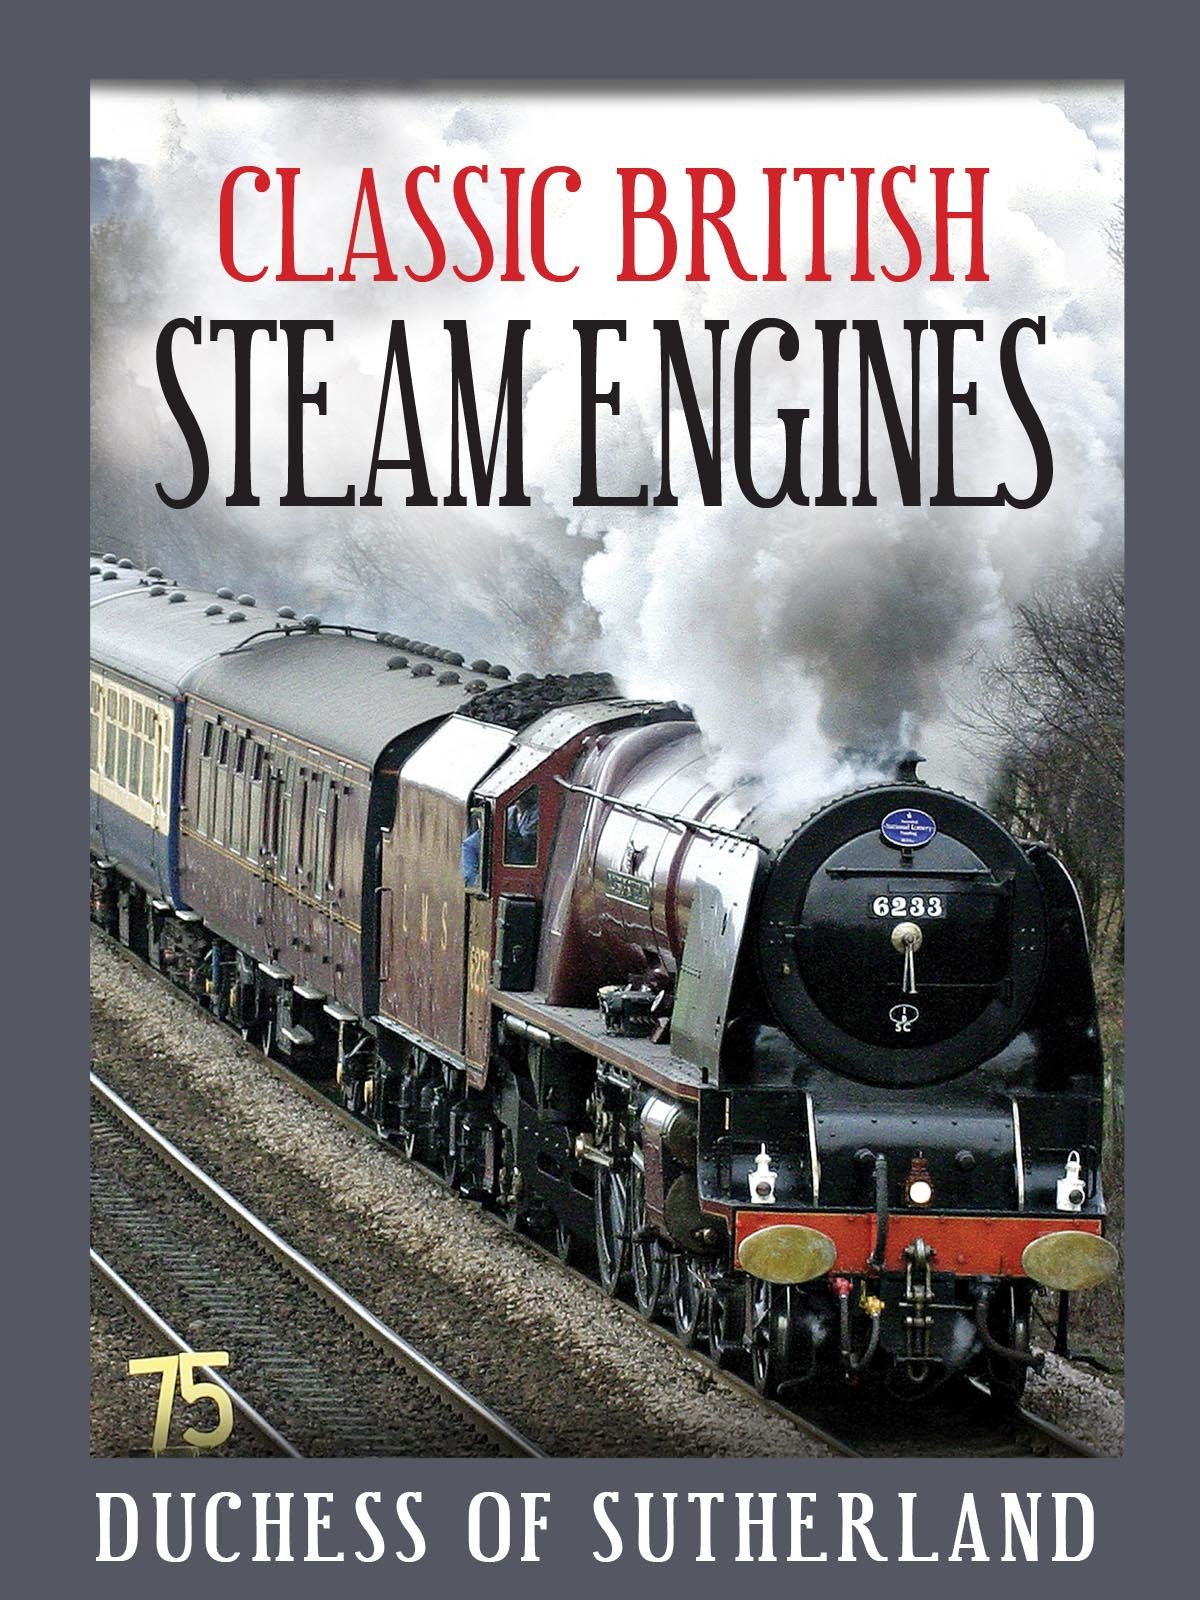 Classic British Steam Engines: Duchess Of Sutherland on Amazon Prime Video UK